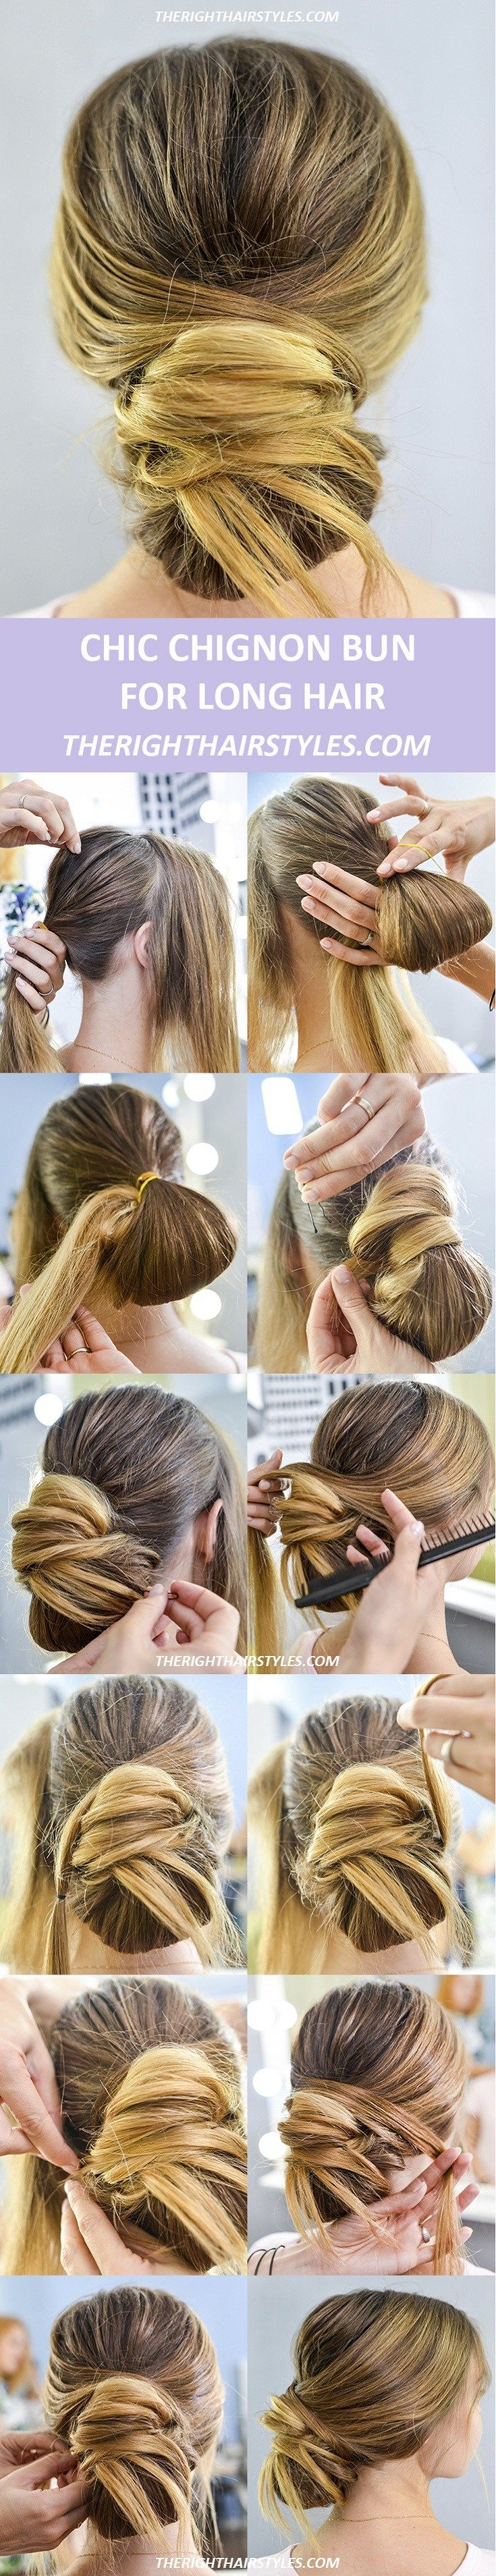 Now make a chic chignon in easy steps band aid bun hairstyle